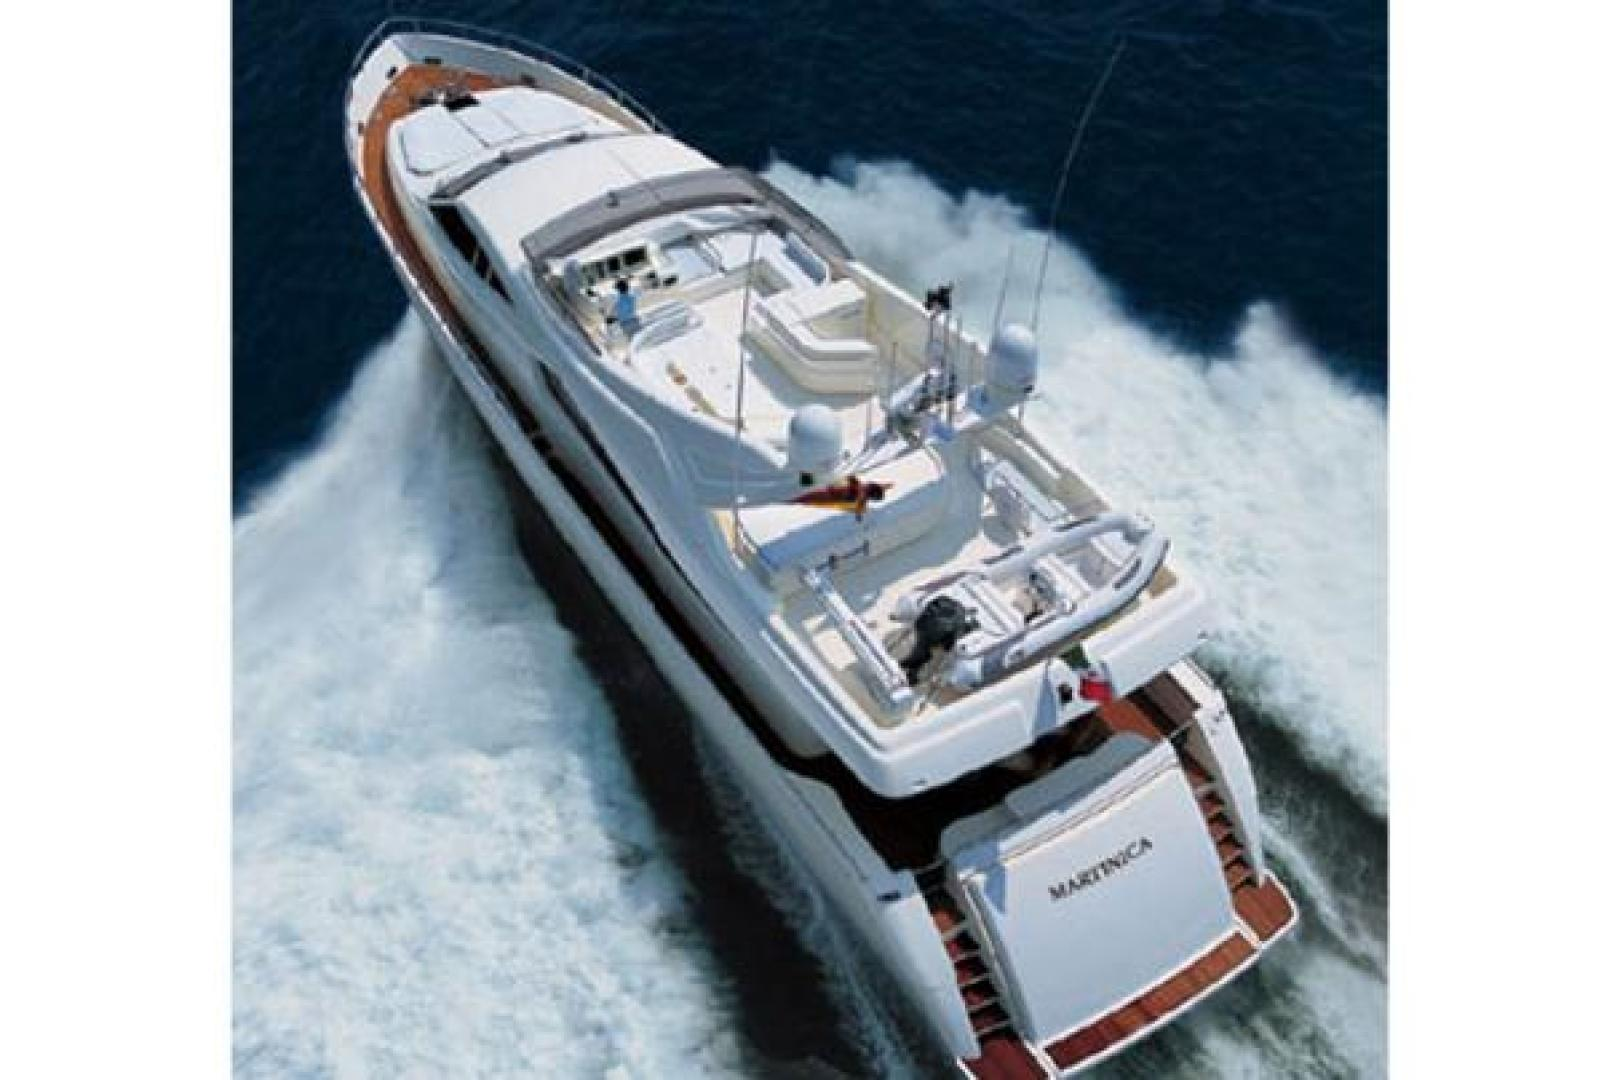 Ferretti Yachts-881 2006 -Unknown-Maldives-Manufacturer Provided Image: Above-1026656 | Thumbnail